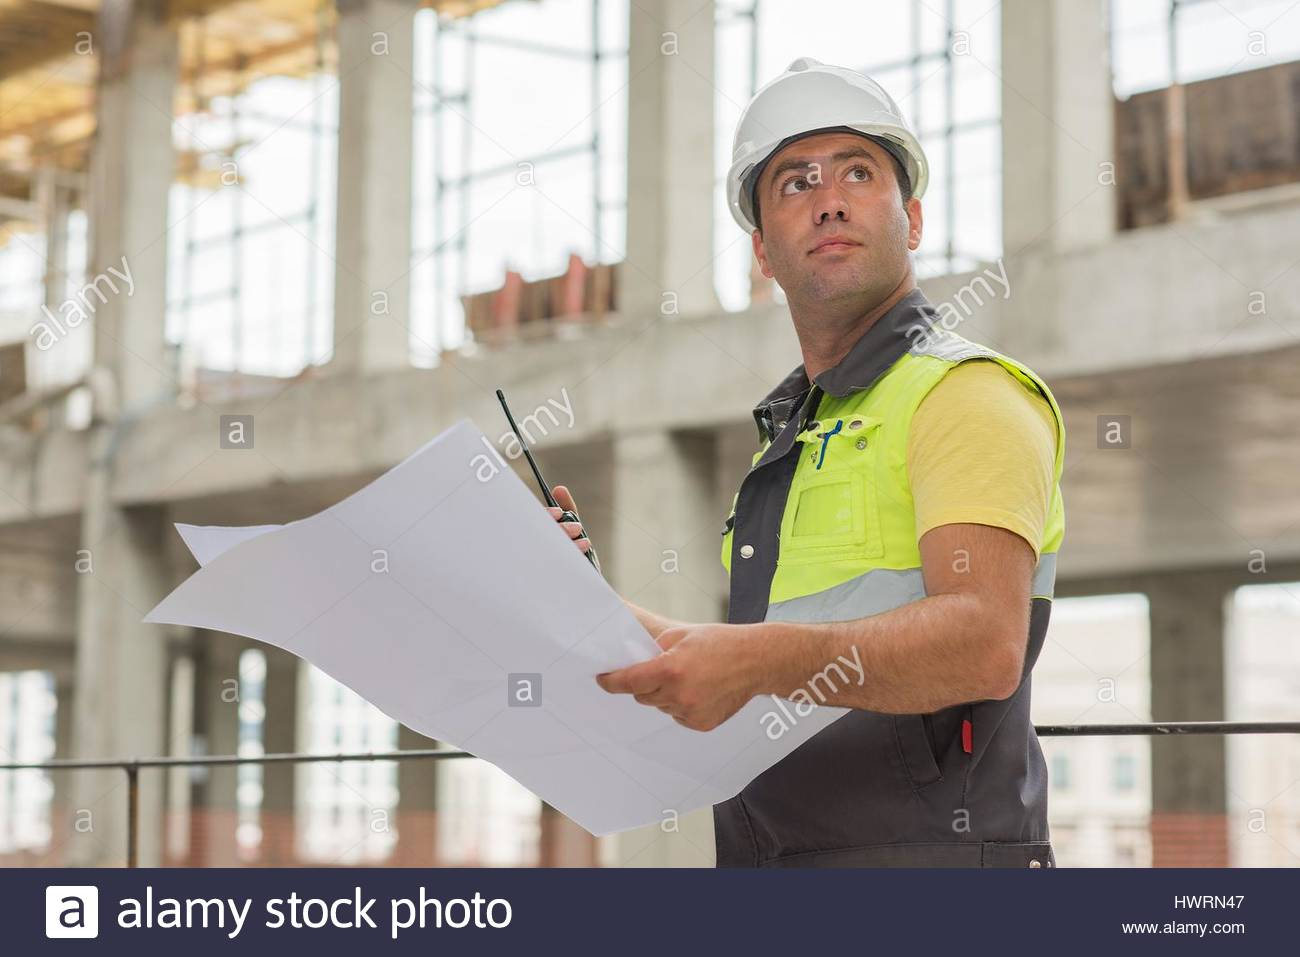 Civil Engineer at construction site is inspecting ongoing production according to design drawings. - Stock Image